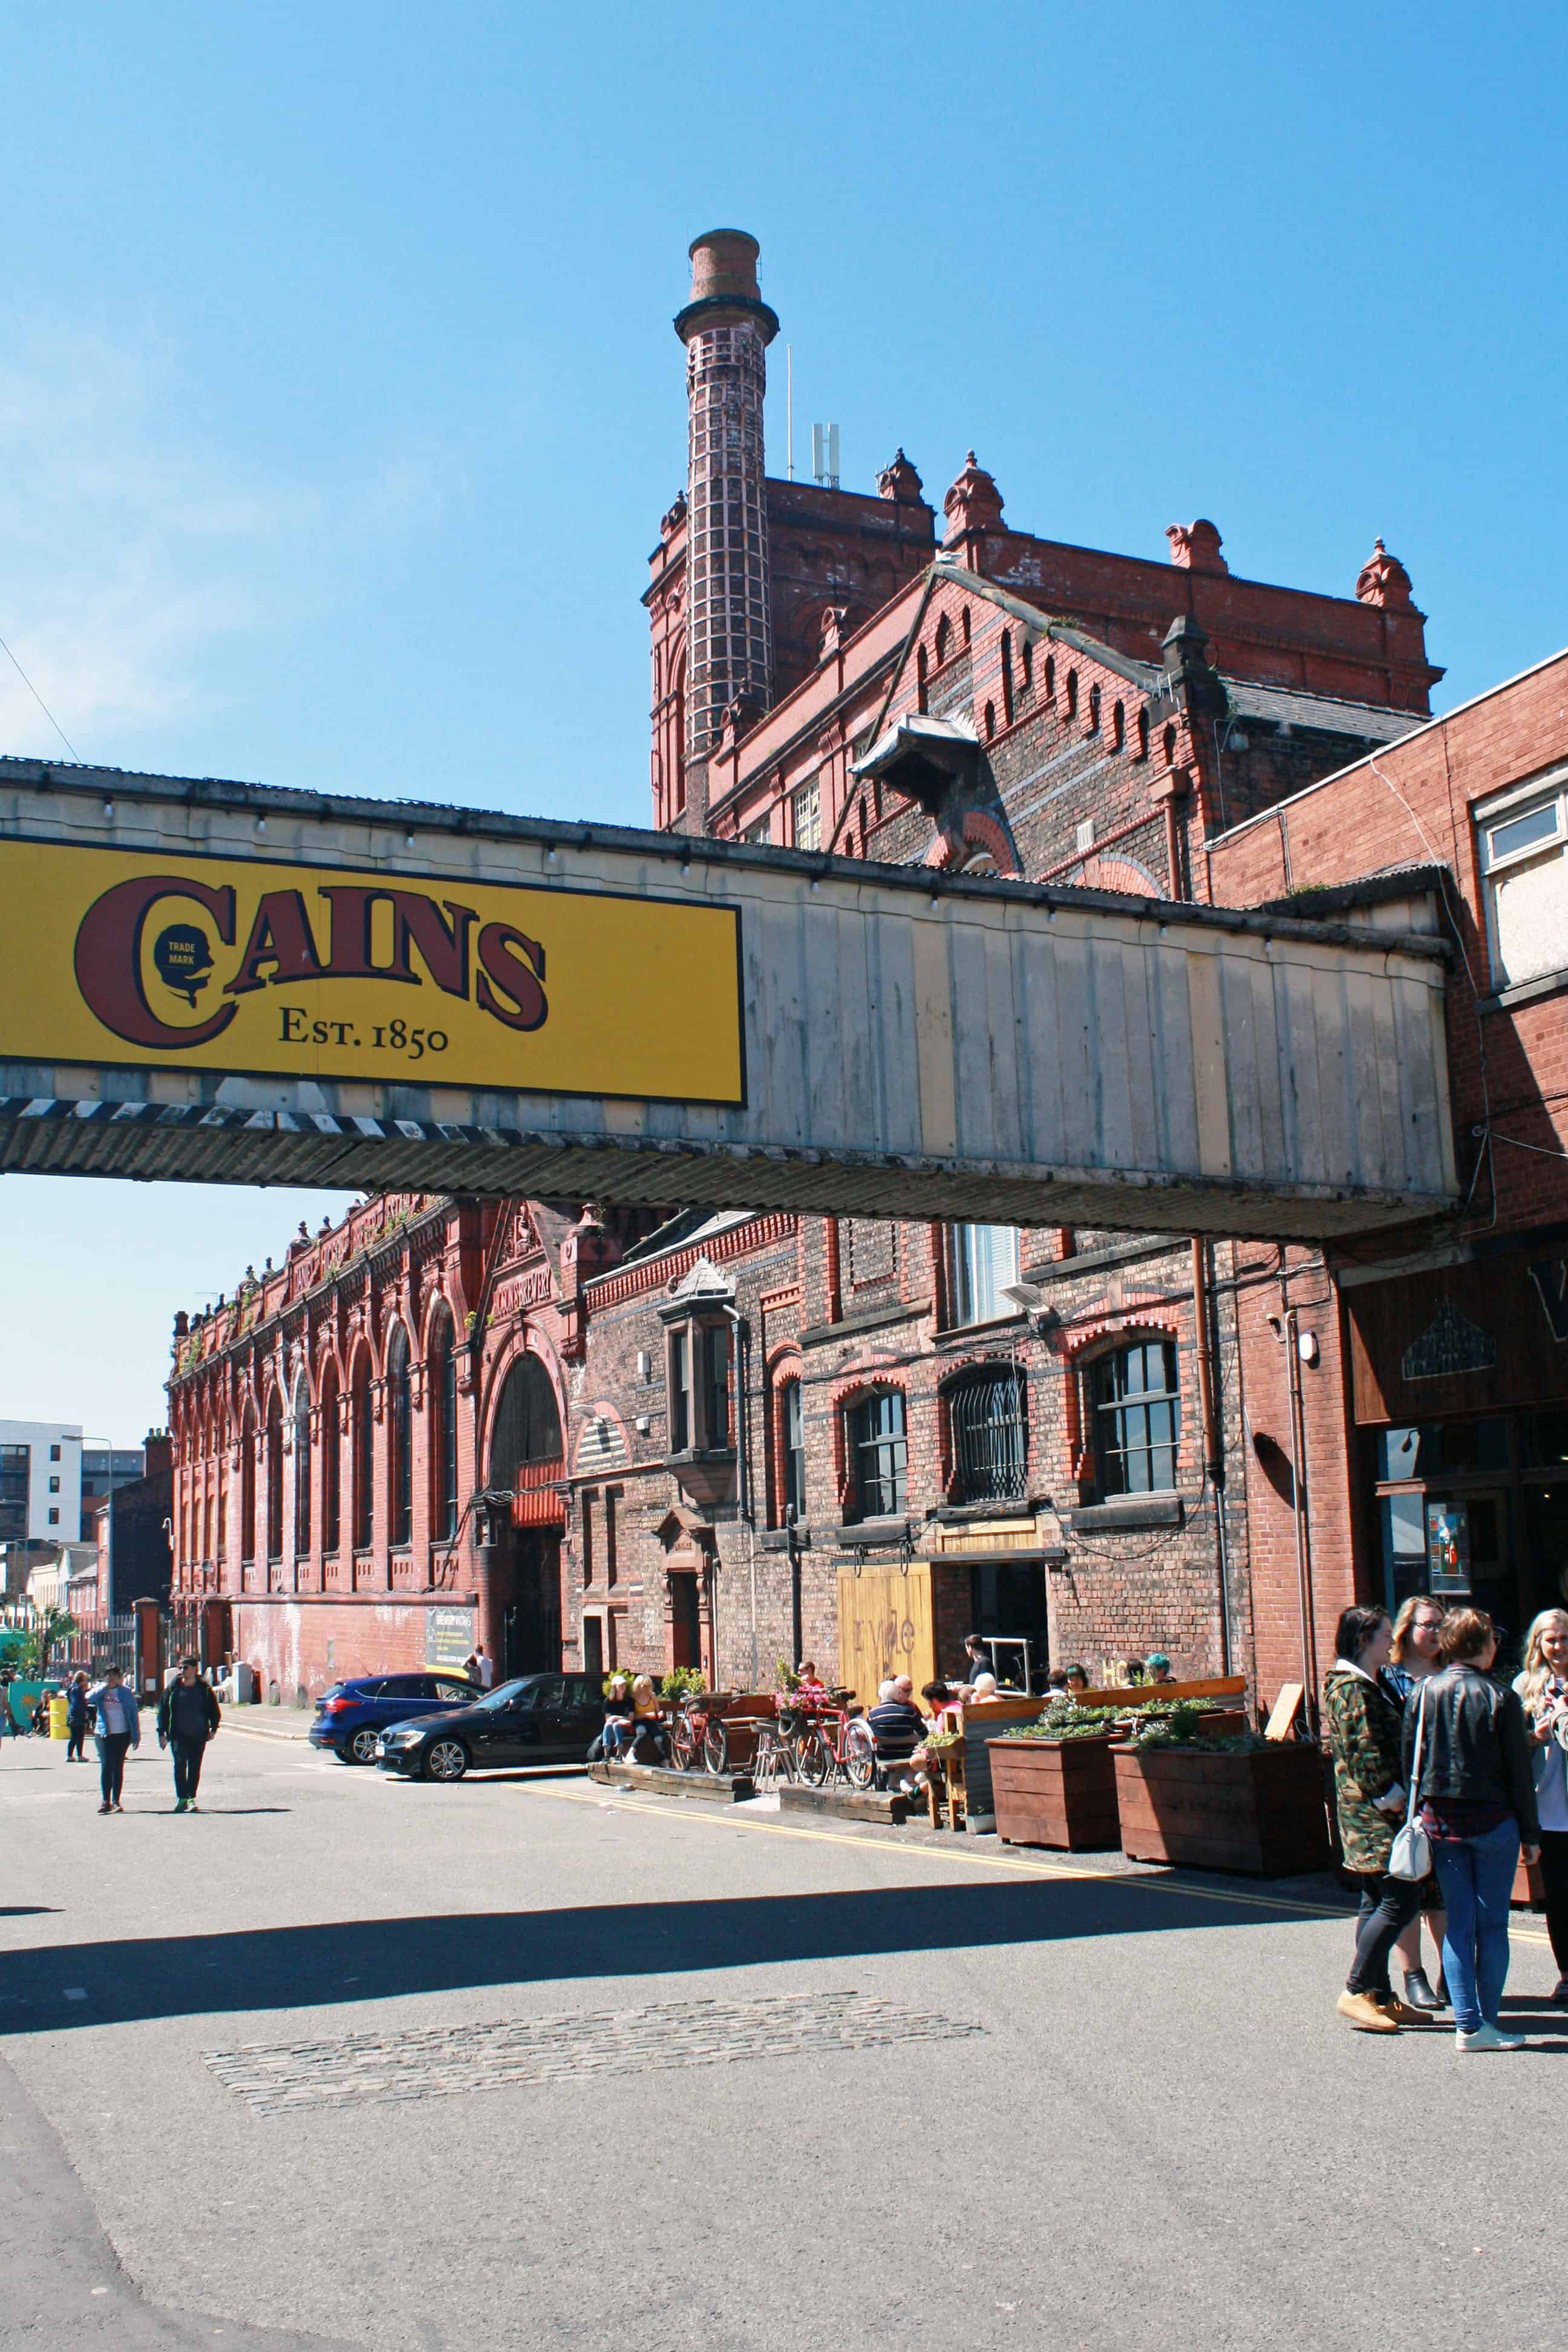 Cains Brewery Village Liverpool